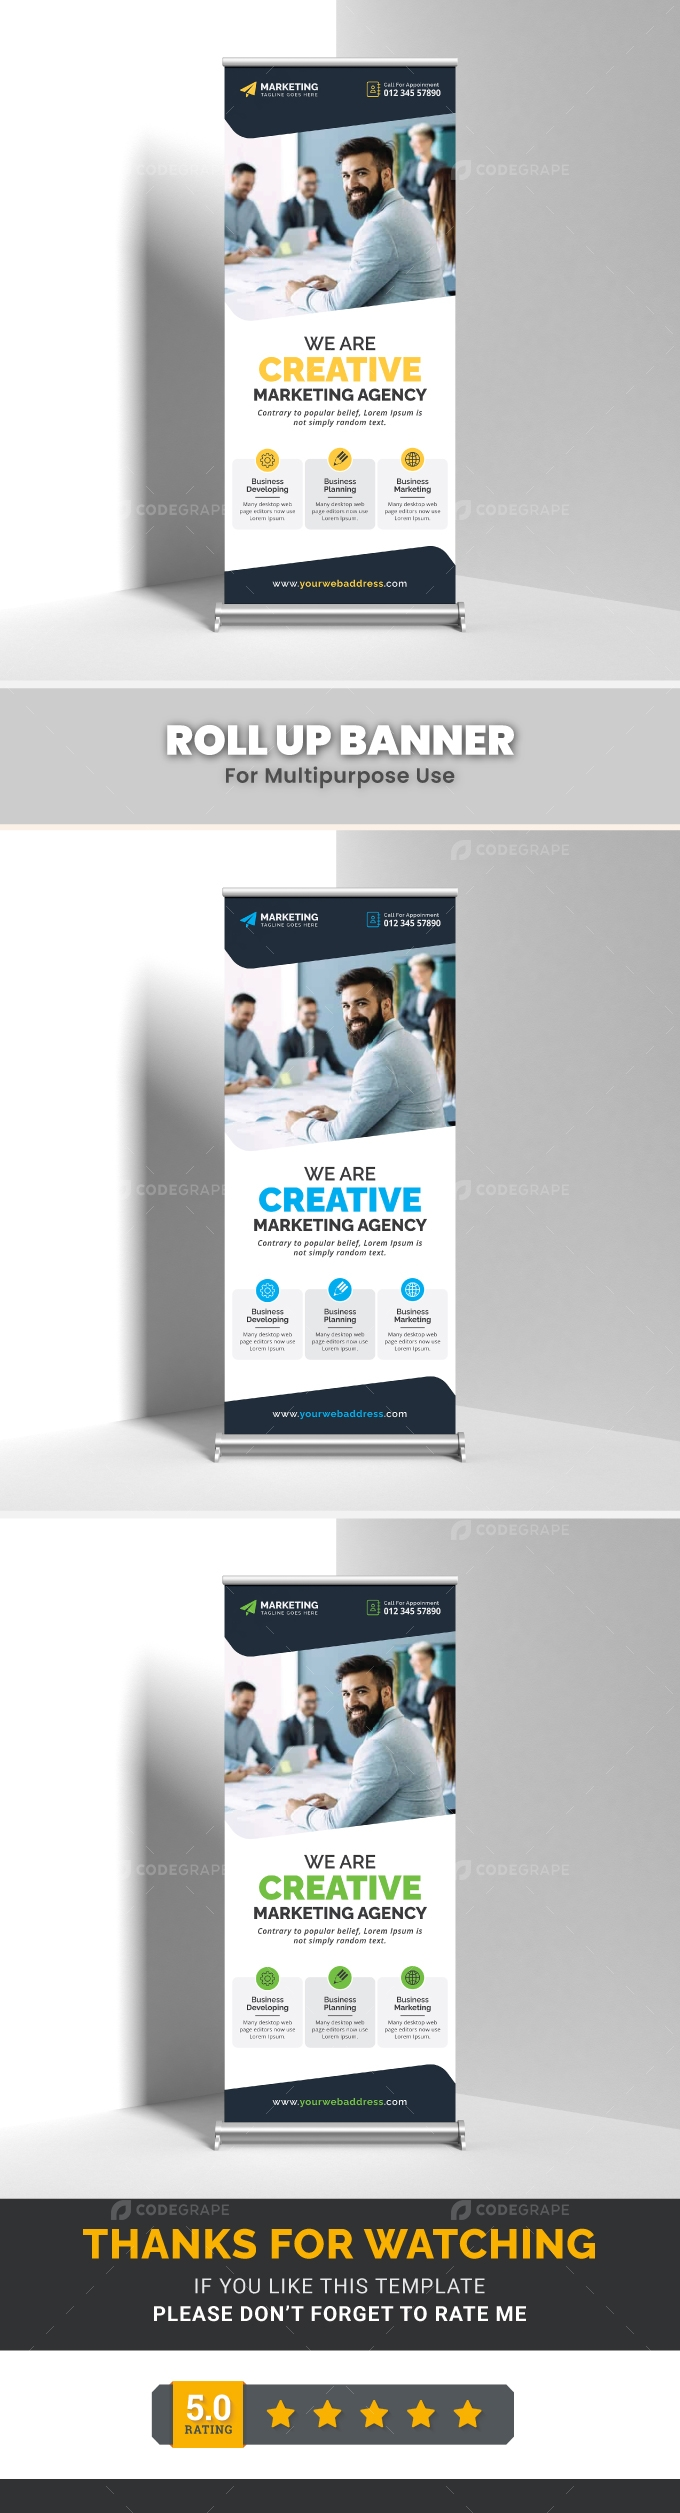 Corporate Roll Up Banner Template